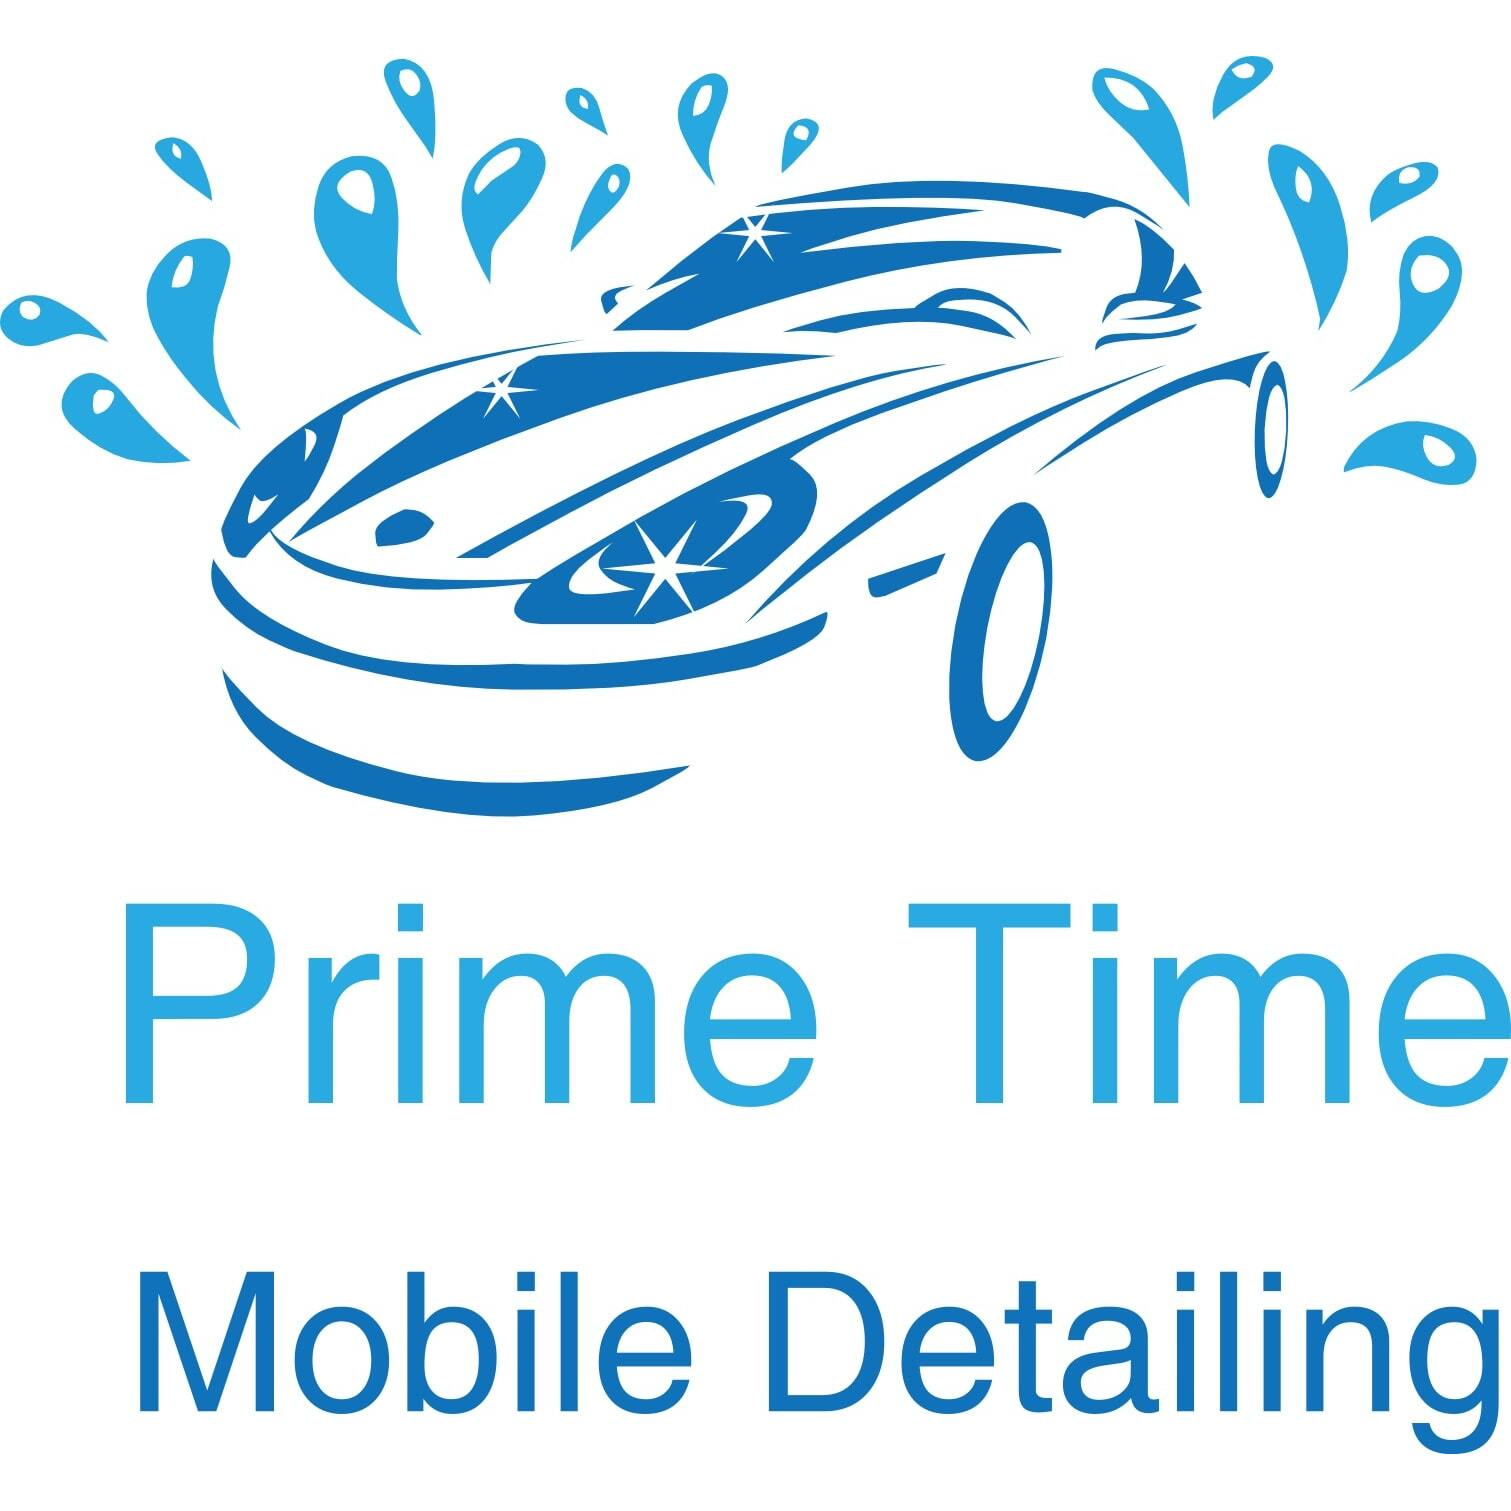 Prime Time Mobile Detailing